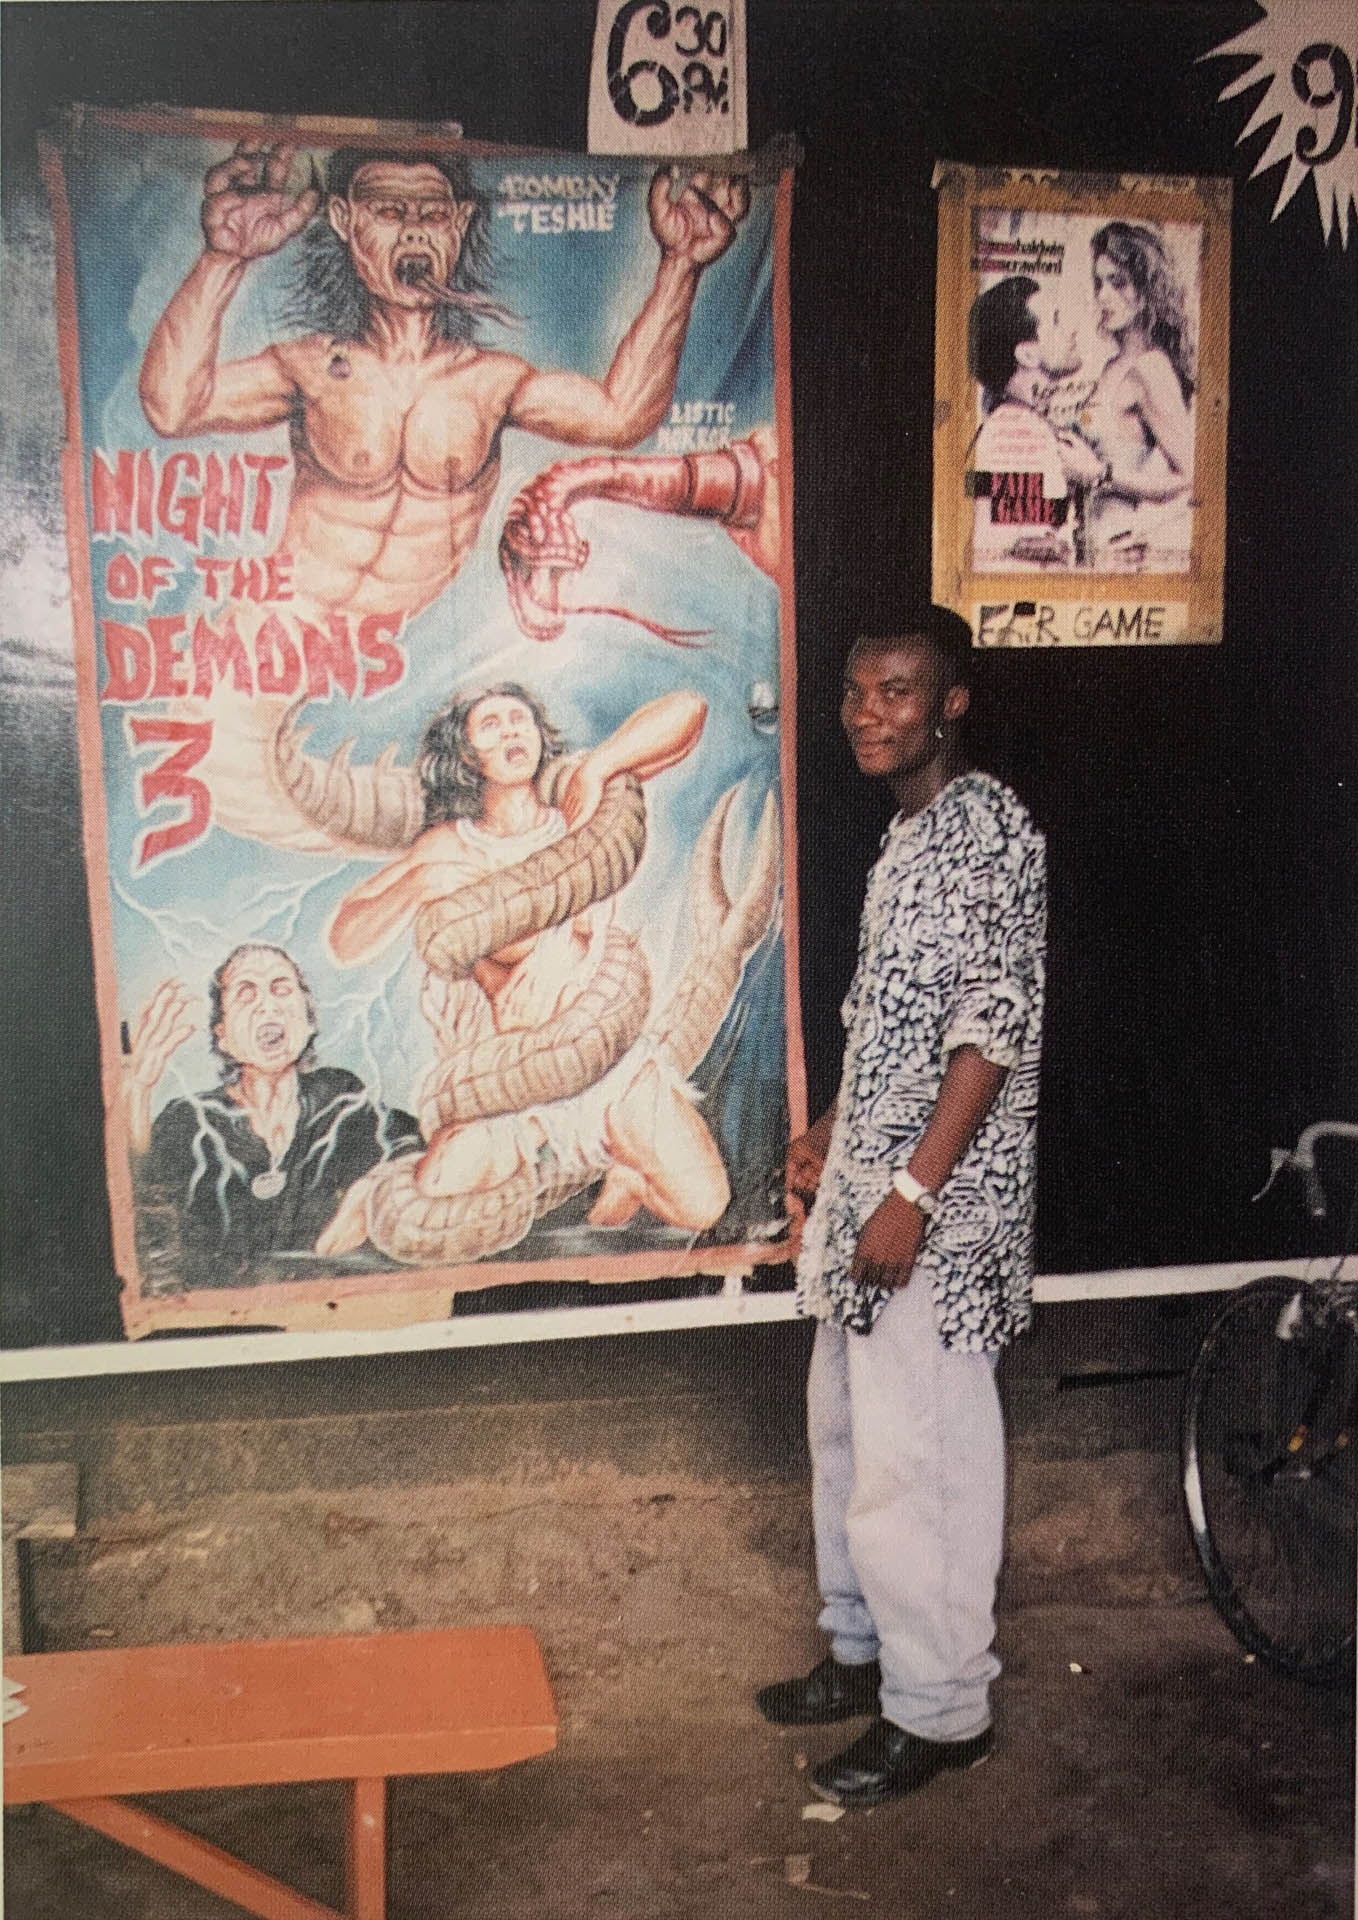 Heavy J. in front of his poster advertising Night of the Demons 3, 1998